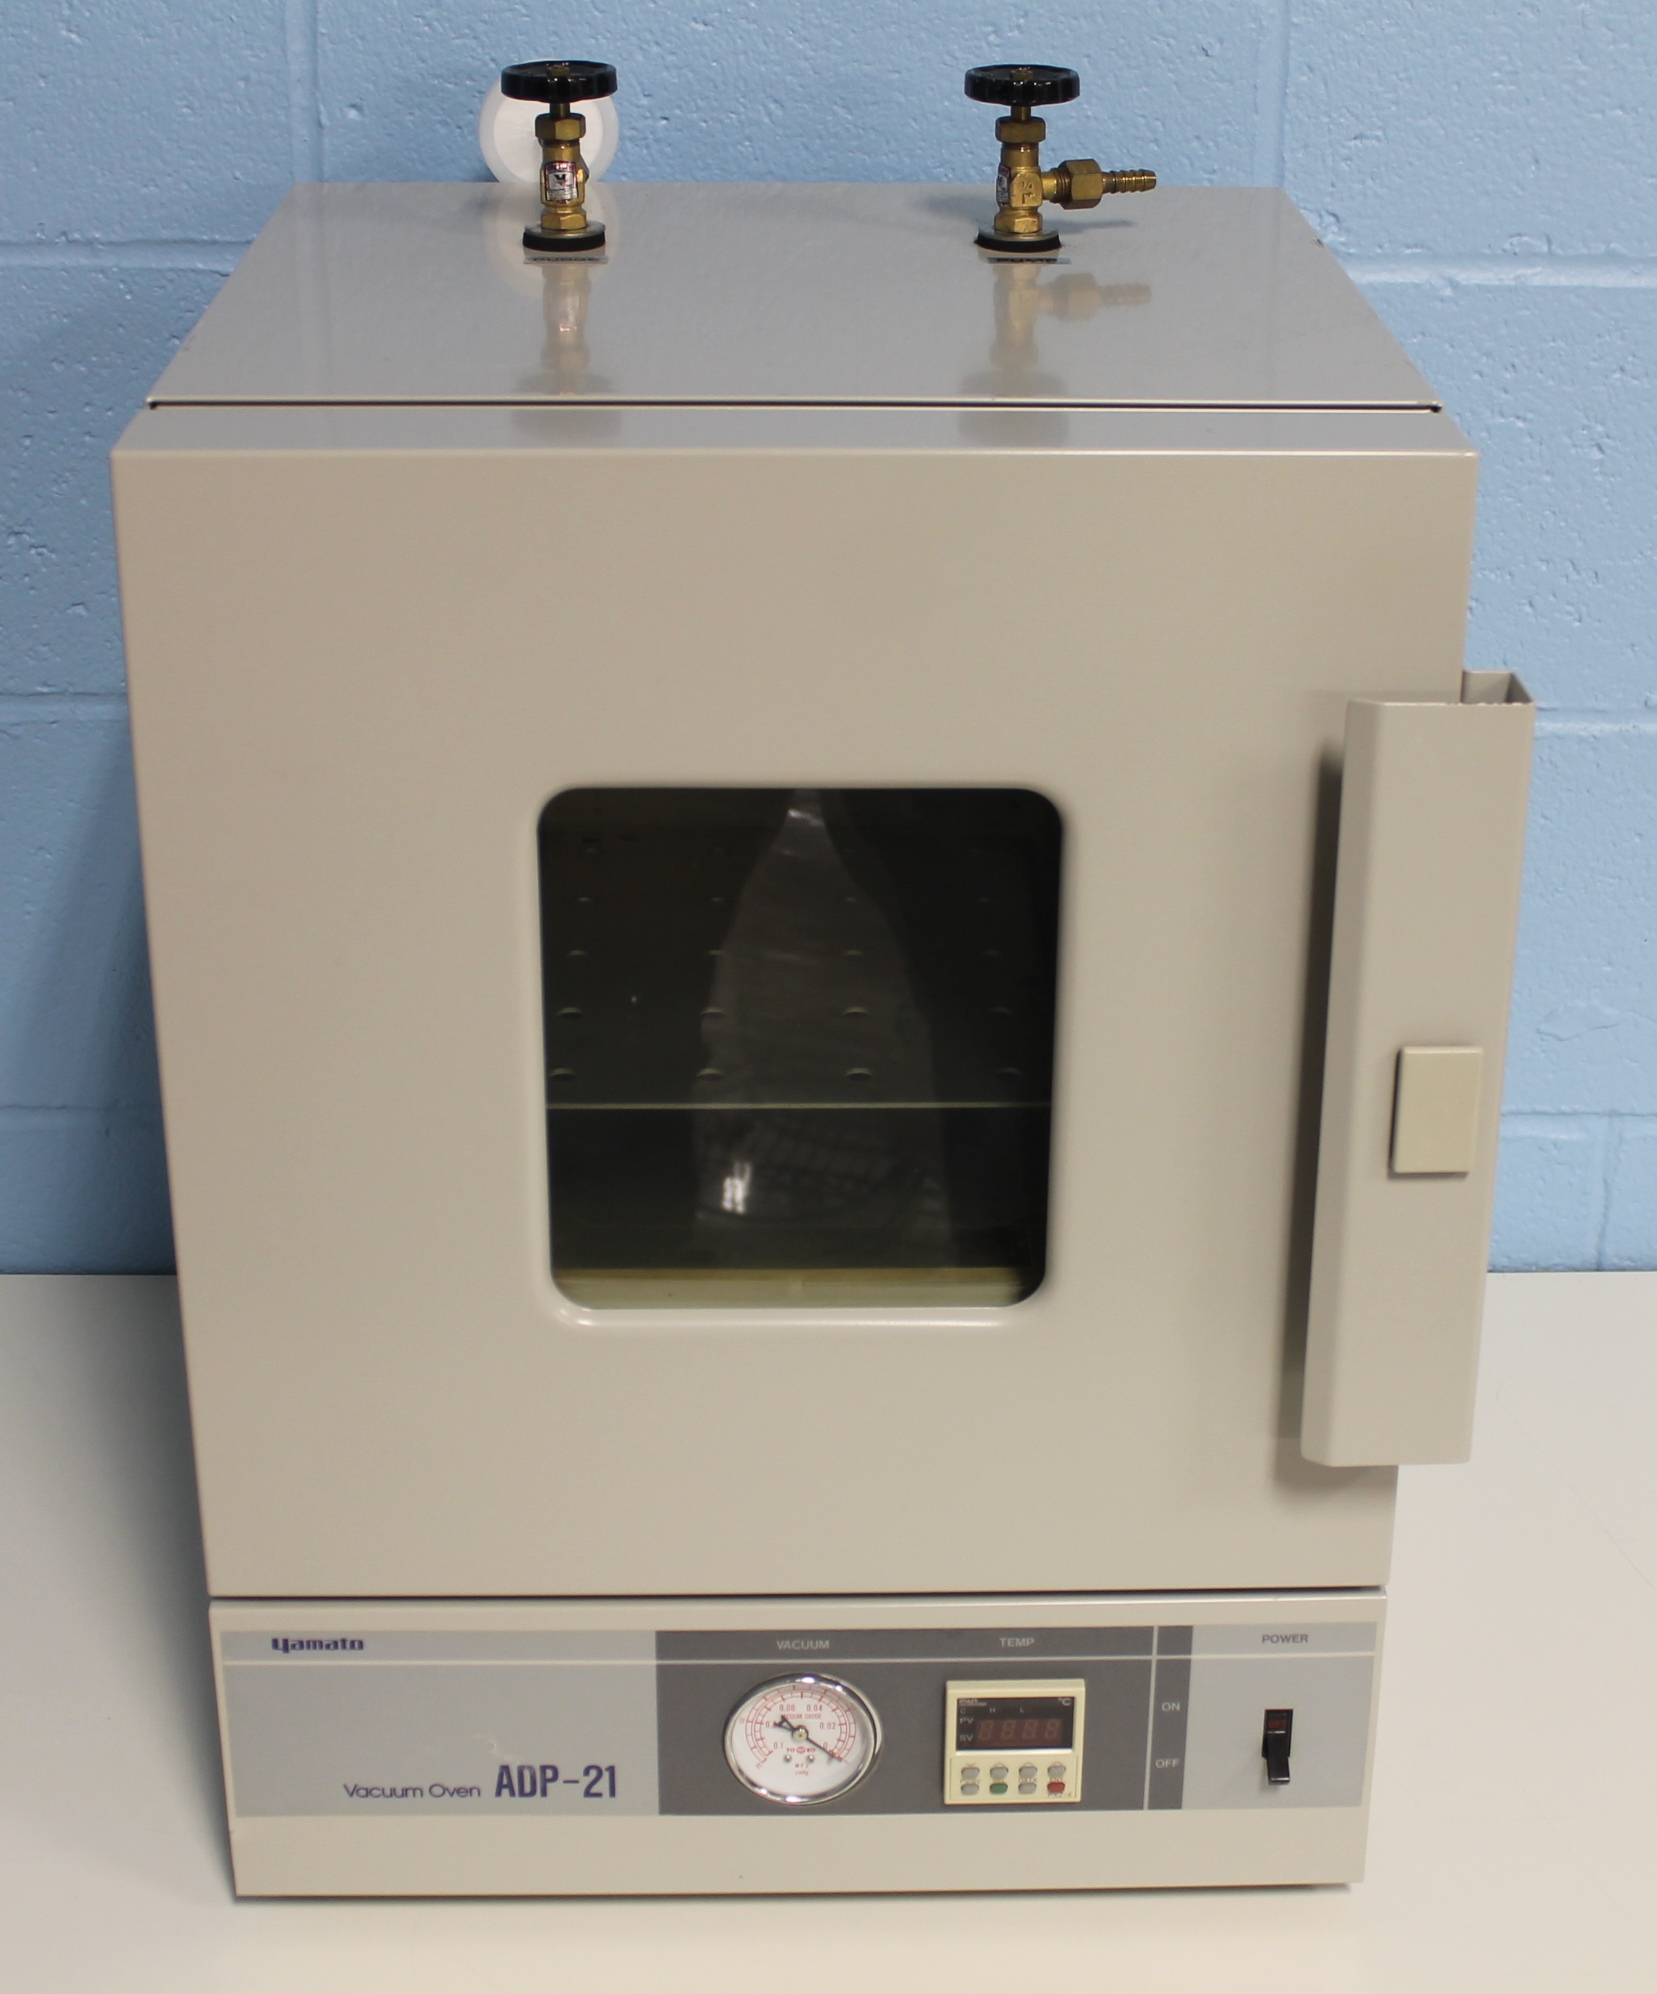 Refurbished Yamato Adp21 Vacuum Drying Oven